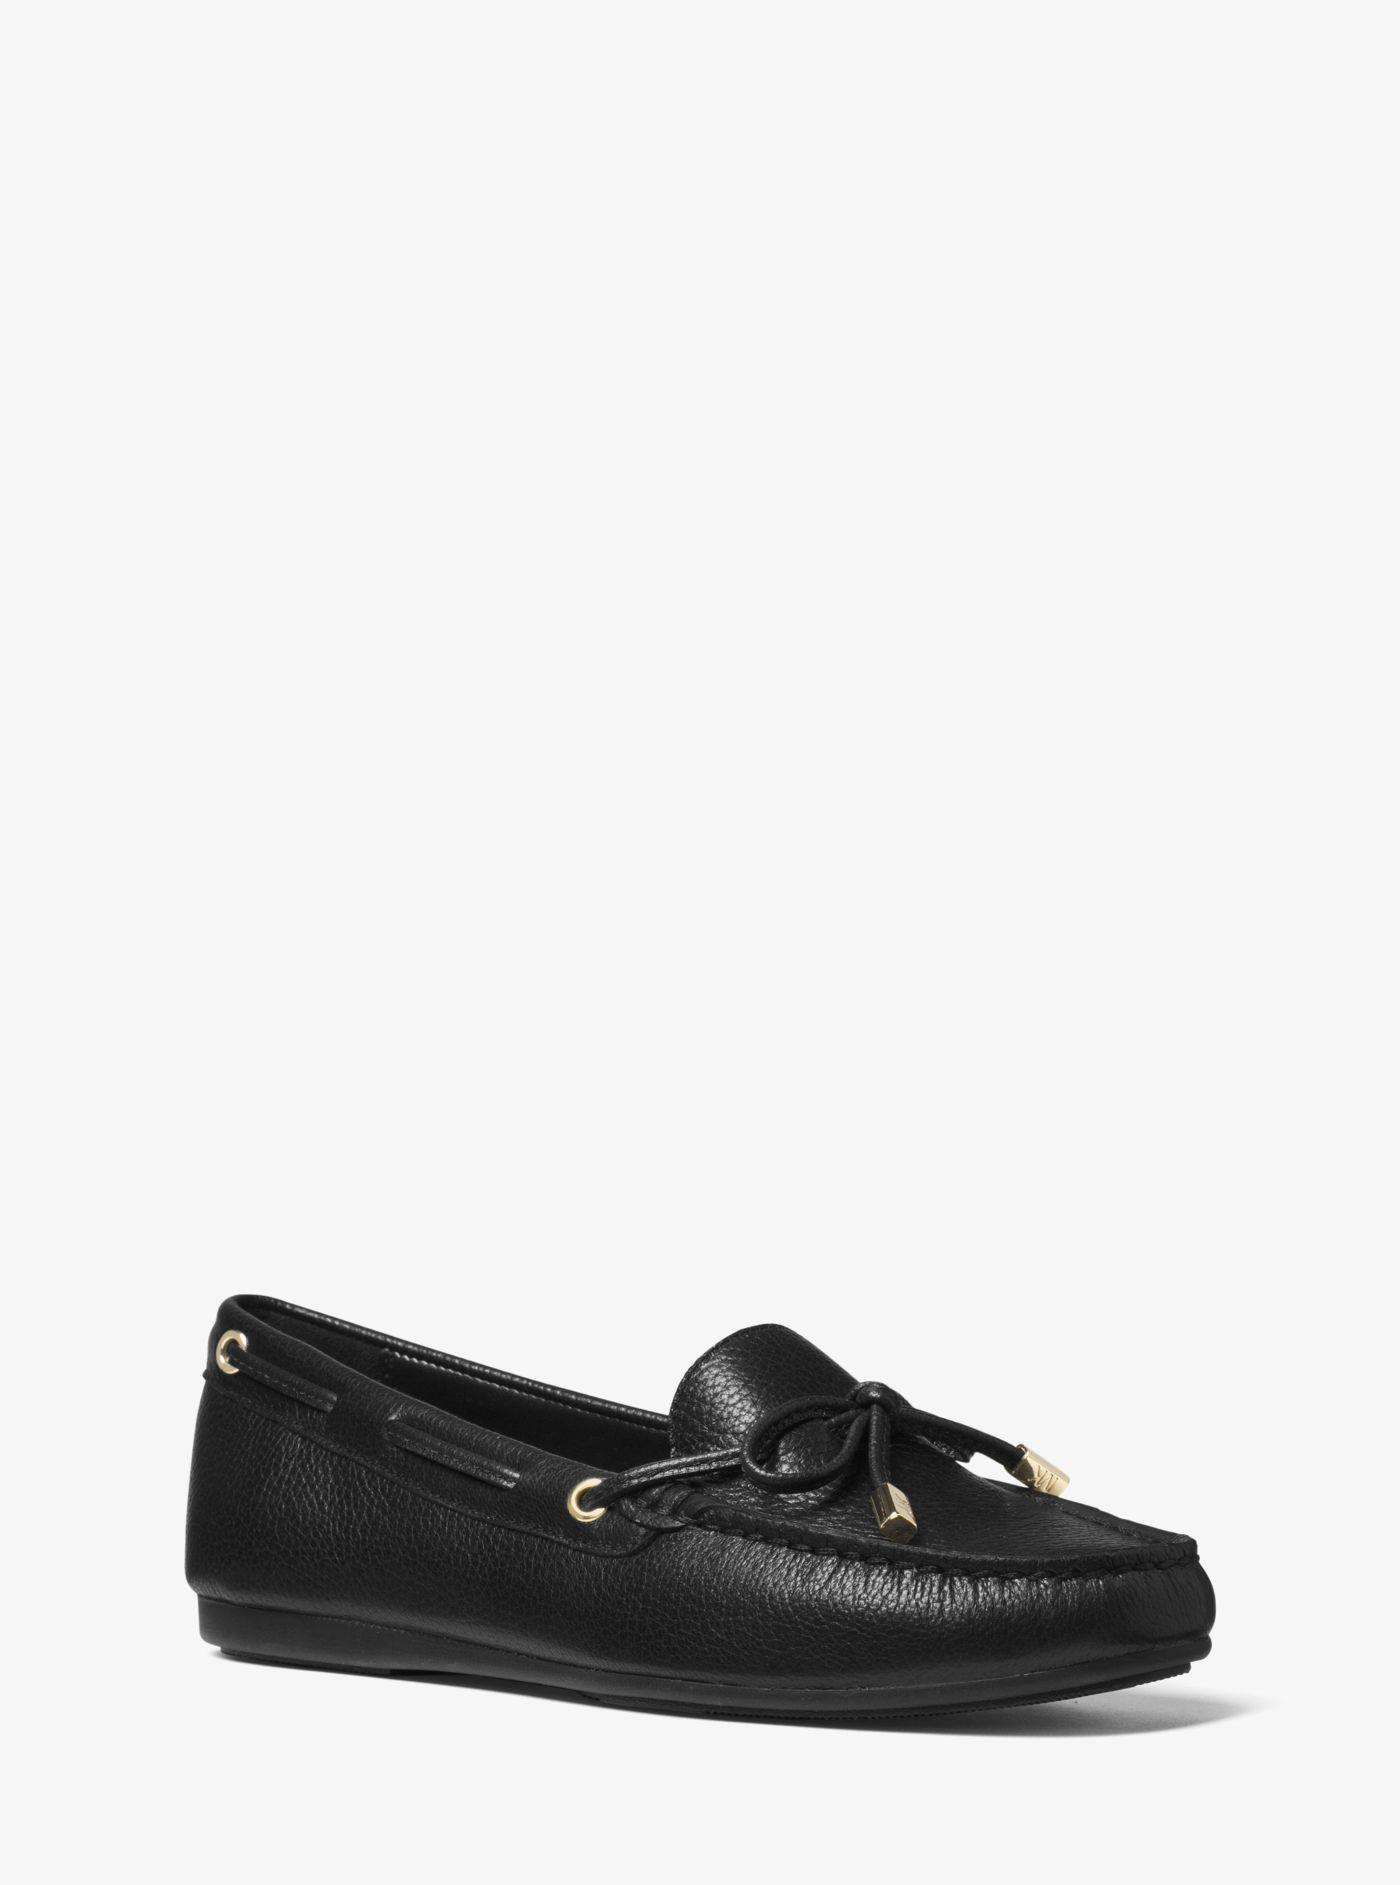 1c153b64444 Lyst - Michael Kors Sutton Leather Moccasin in Black